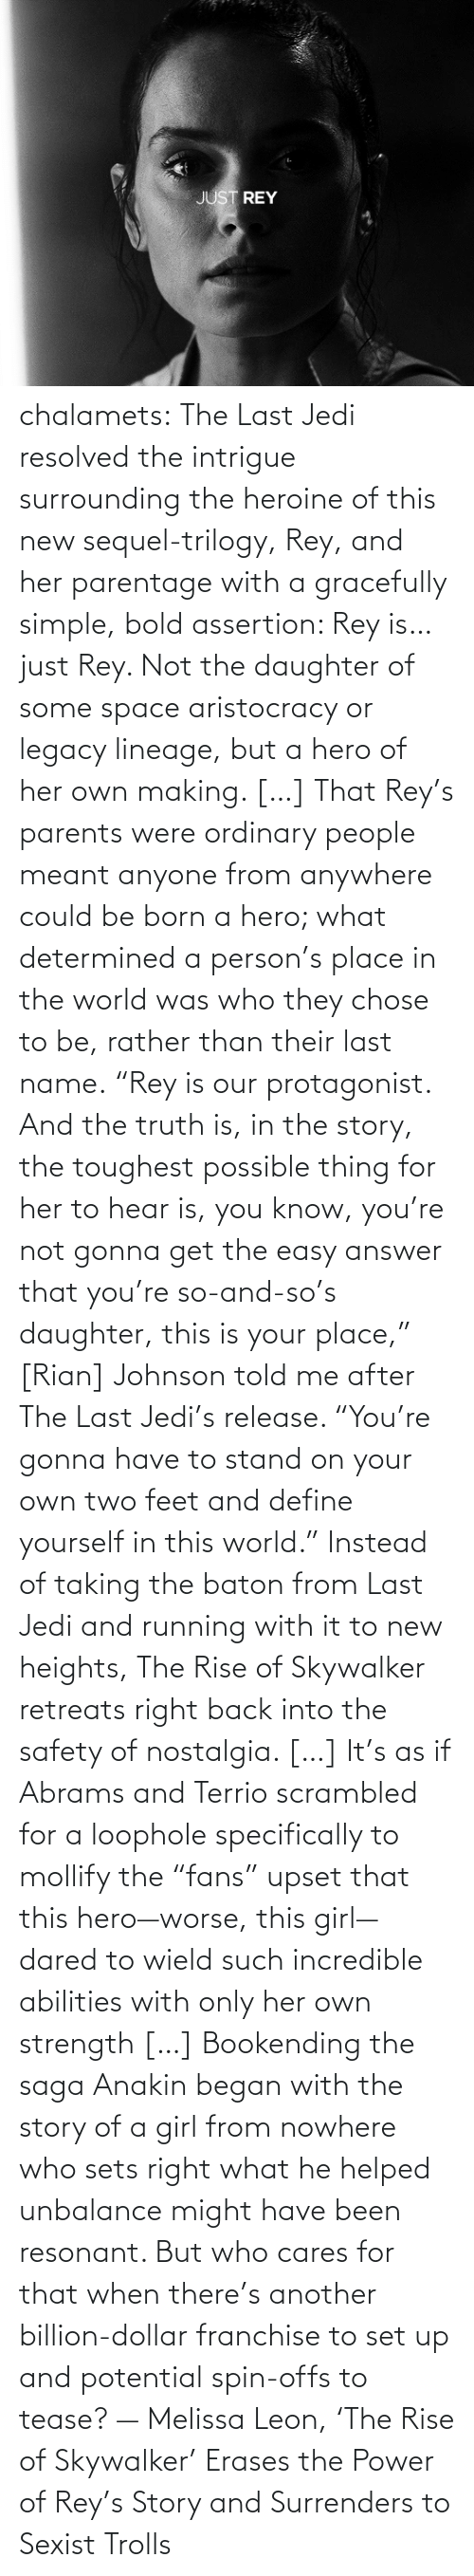 "gonna: chalamets:  The Last Jedi resolved the intrigue surrounding the heroine of this new sequel-trilogy, Rey, and her parentage with a gracefully simple, bold assertion: Rey is… just Rey. Not the daughter of some space aristocracy or legacy lineage, but a hero of her own making. […] That Rey's parents were ordinary people meant anyone from anywhere could be born a hero; what determined a person's place in the world was who they chose to be, rather than their last name. ""Rey is our protagonist. And the truth is, in the story, the toughest possible thing for her to hear is, you know, you're not gonna get the easy answer that you're so-and-so's daughter, this is your place,"" [Rian] Johnson told me after The Last Jedi's release. ""You're gonna have to stand on your own two feet and define yourself in this world."" Instead of taking the baton from Last Jedi and running with it to new heights, The Rise of Skywalker retreats right back into the safety of nostalgia. […] It's as if Abrams and Terrio scrambled for a loophole specifically to mollify the ""fans"" upset that this hero—worse, this girl—dared to wield such incredible abilities with only her own strength […] Bookending the saga Anakin began with the story of a girl from nowhere who sets right what he helped unbalance might have been resonant. But who cares for that when there's another billion-dollar franchise to set up and potential spin-offs to tease? — Melissa Leon, 'The Rise of Skywalker' Erases the Power of Rey's Story and Surrenders to Sexist Trolls"